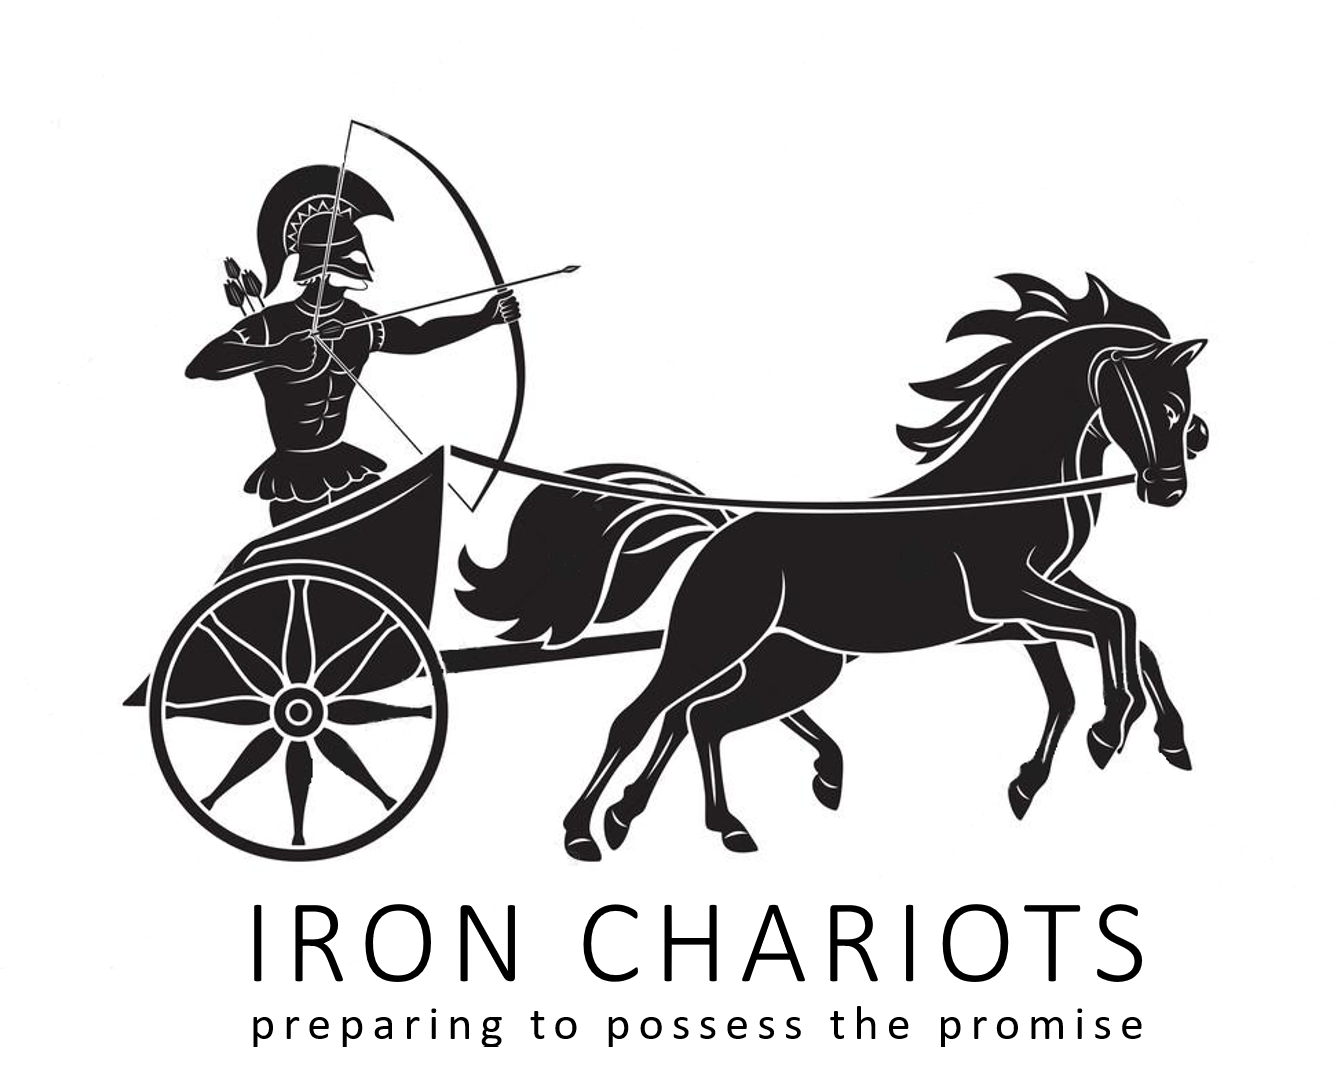 Casting Chariots | preparing to possess the promise